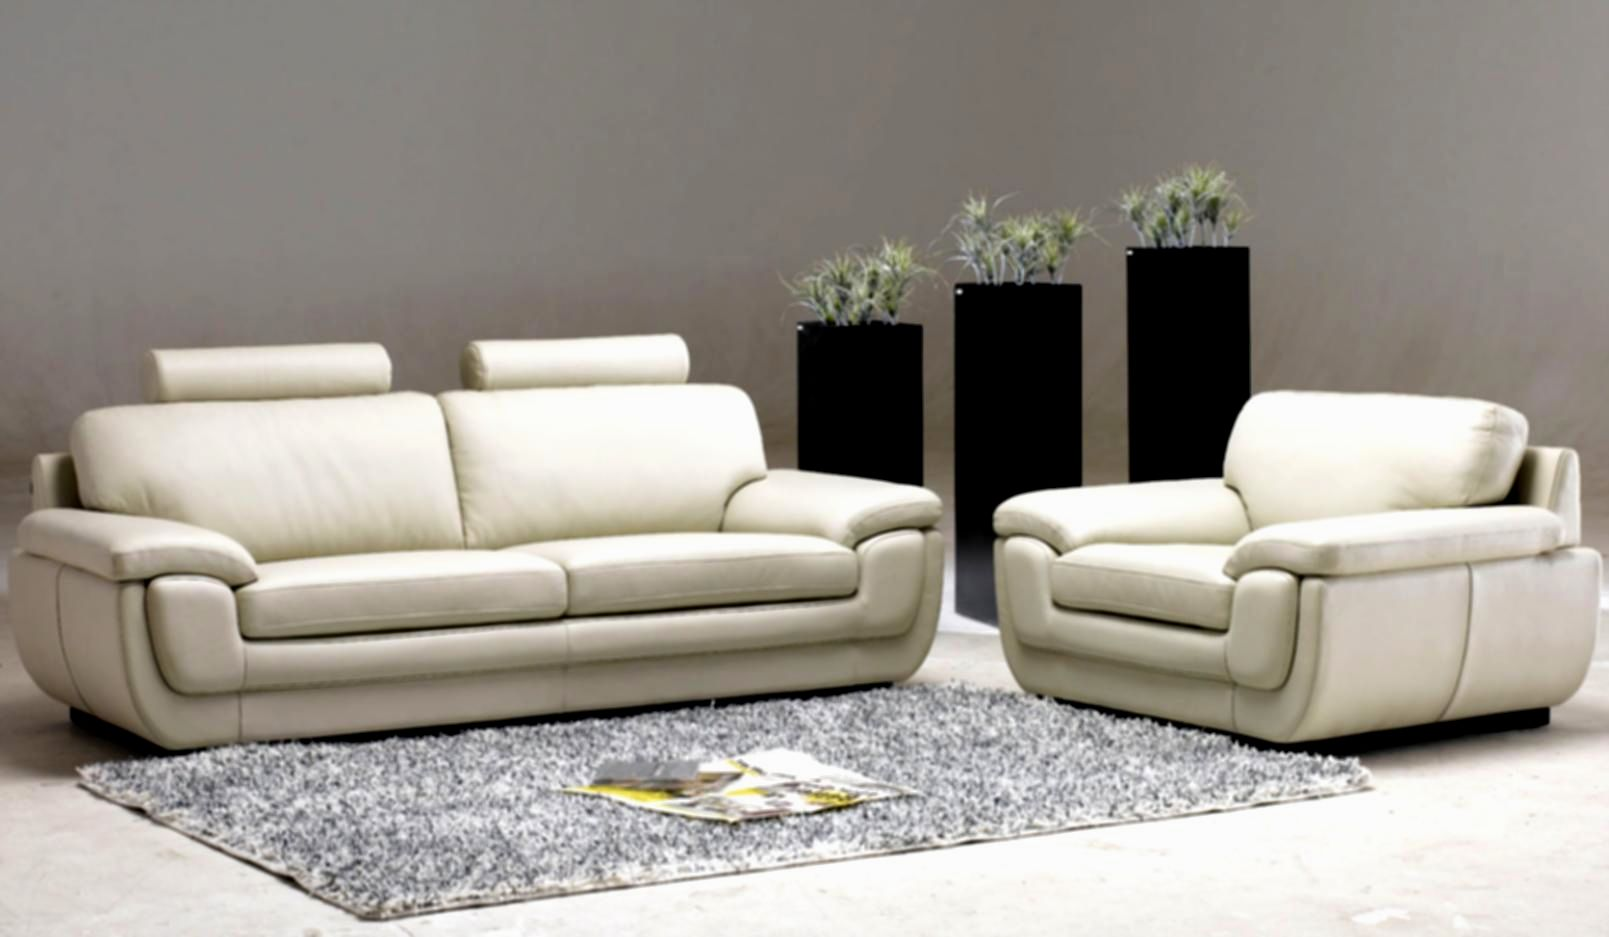 best sofa set for sale decoration-Awesome sofa Set for Sale Construction